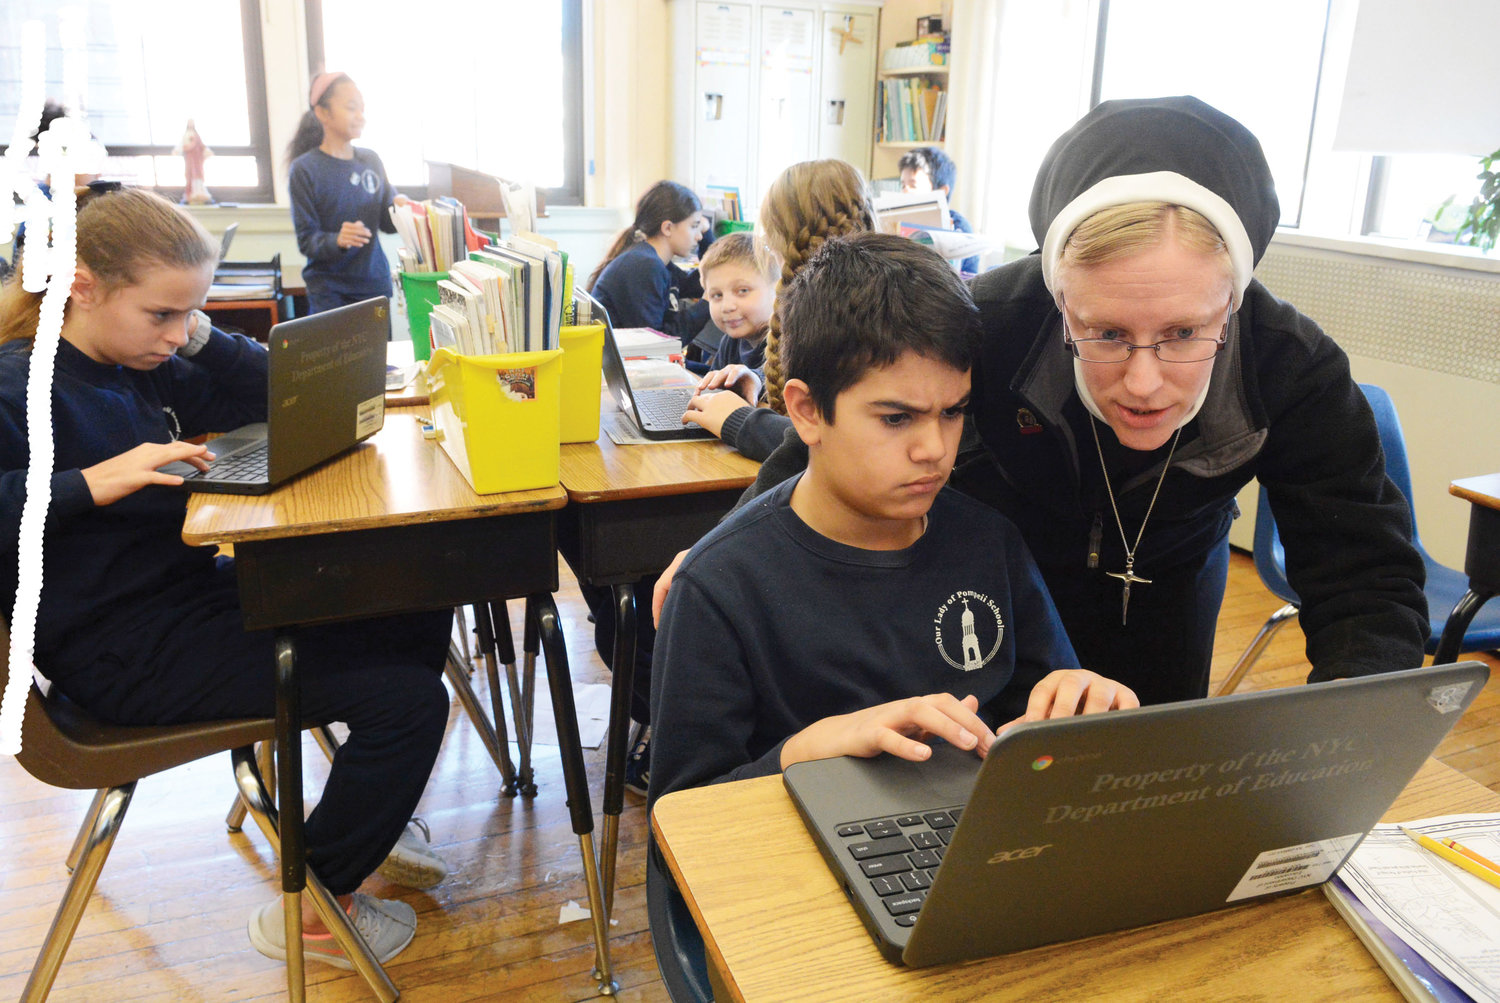 Sister Kathryn assisted a student during fifth grade math class at Our Lady of Pompeii School.